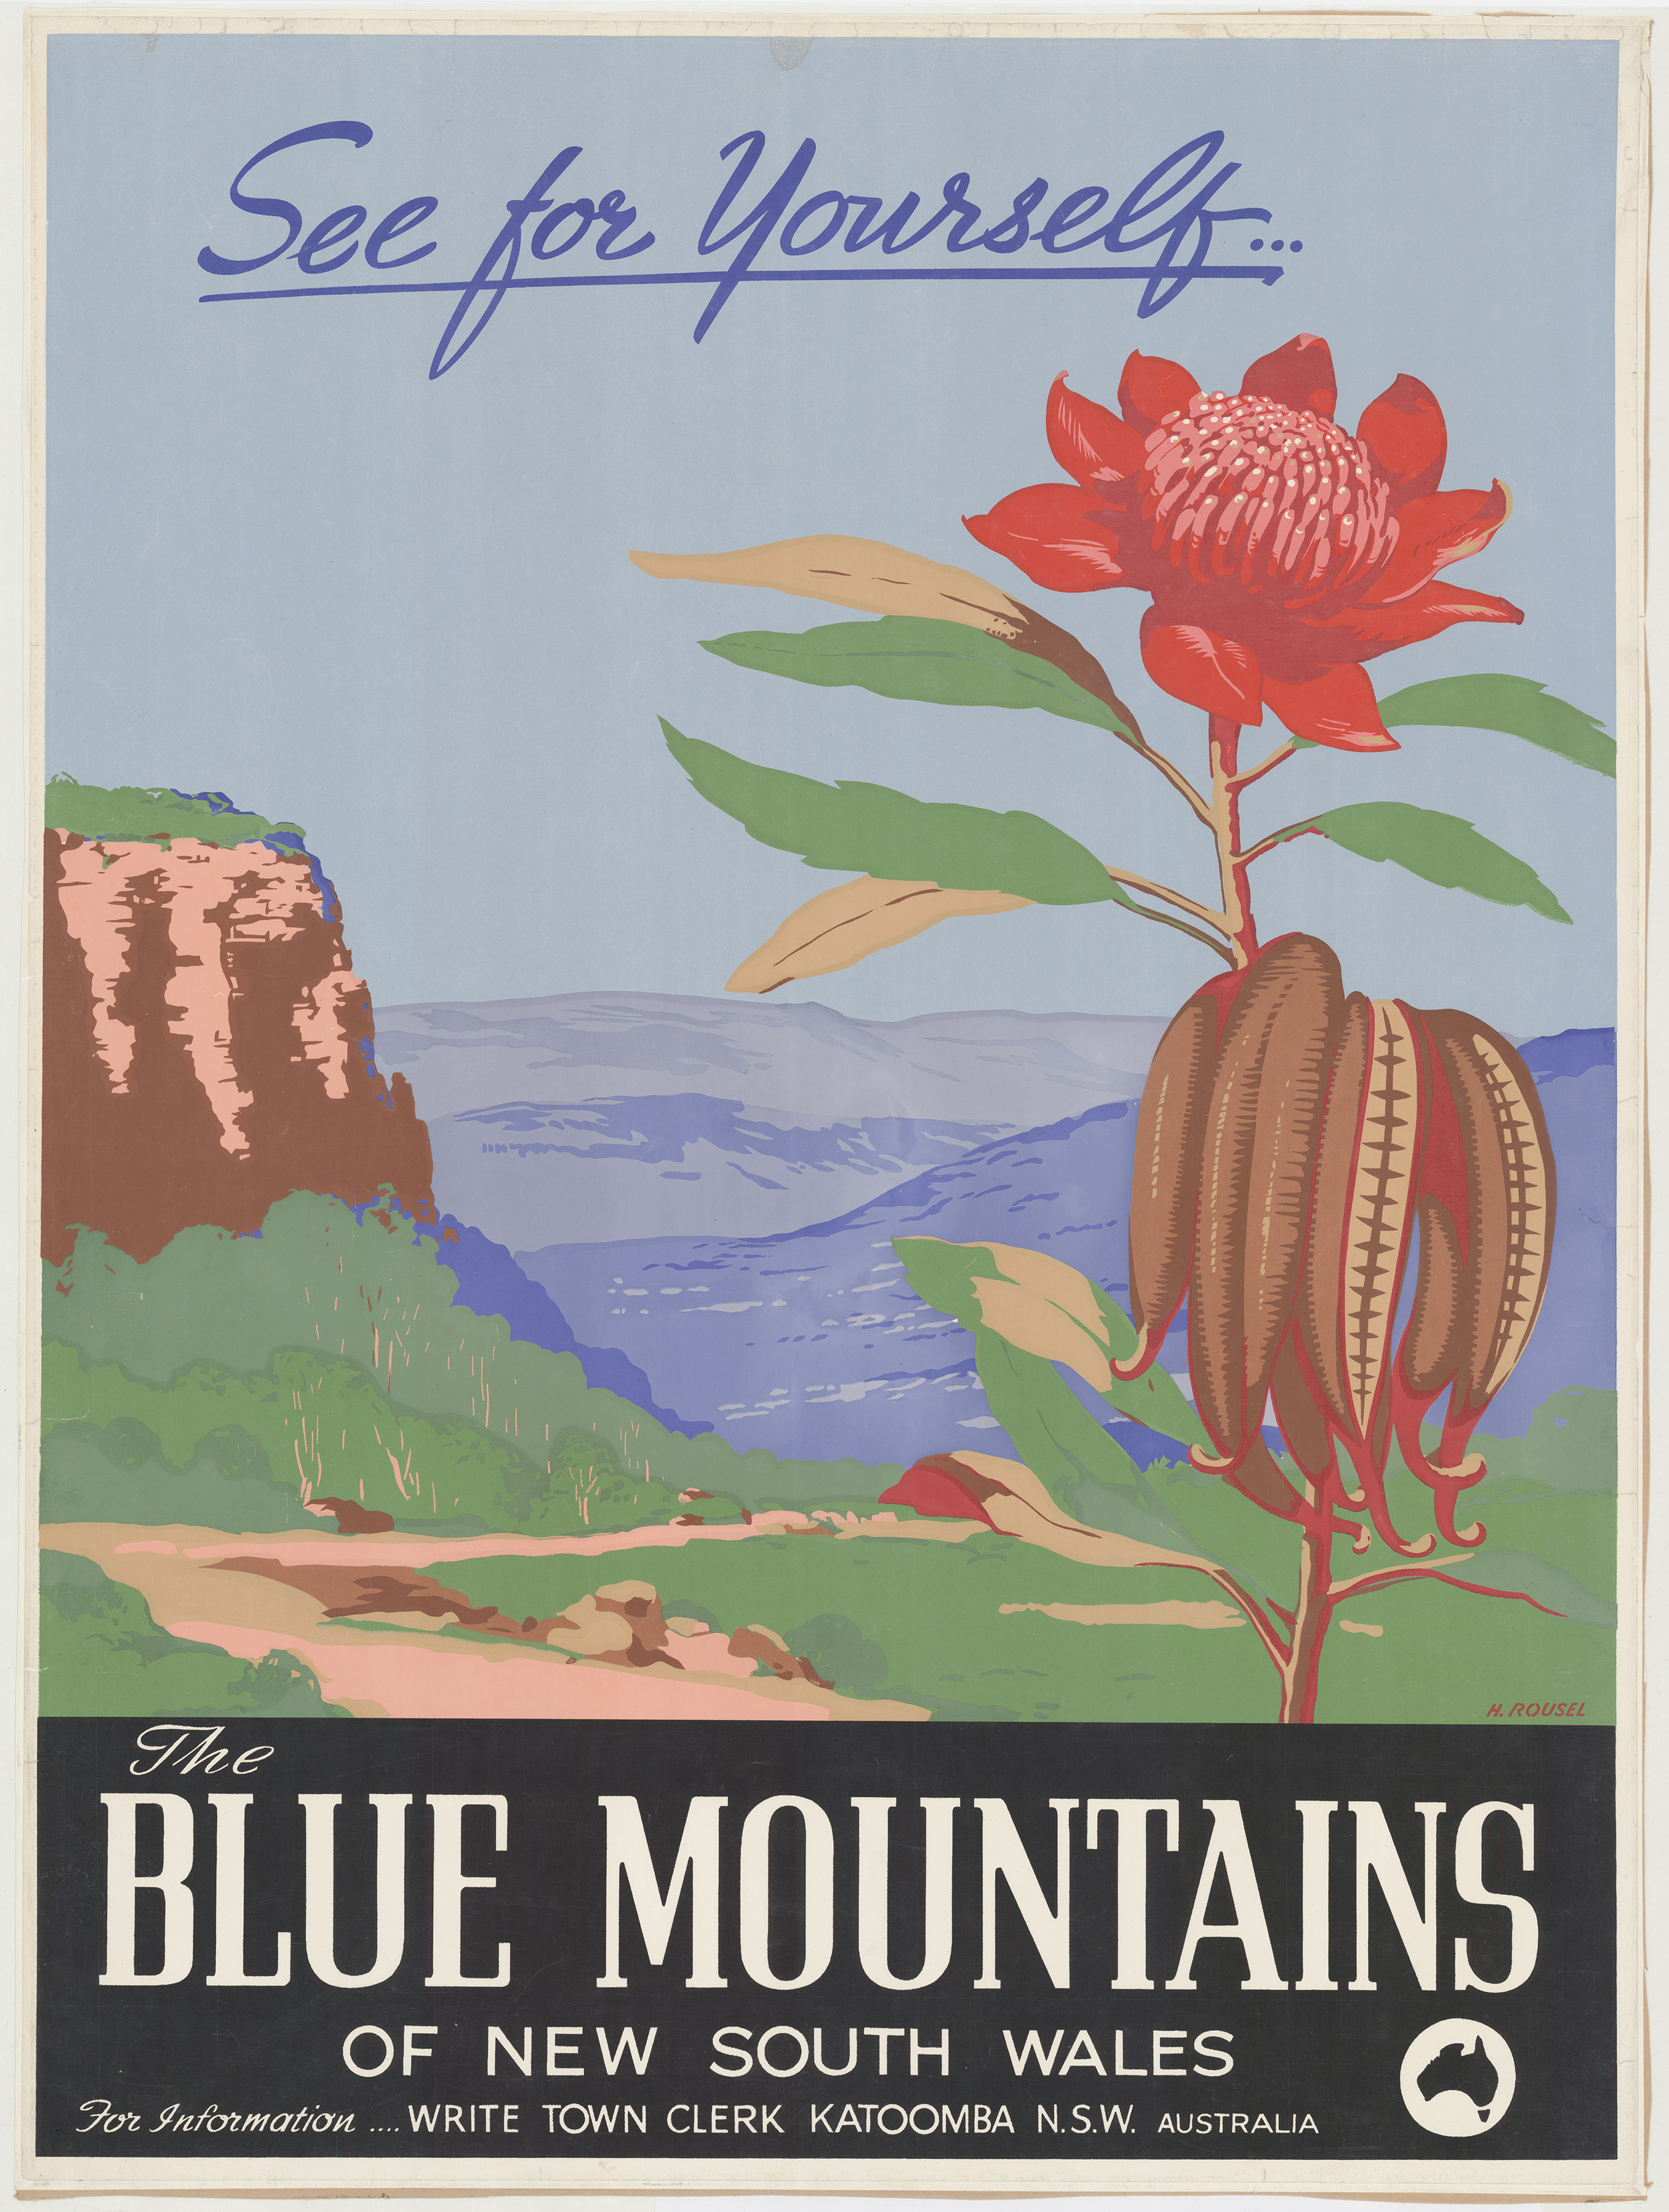 A poster promotion the Blue Mountains showing a graphic of a waratah in front of a landscape showing a cliff face and bushland in the distance.